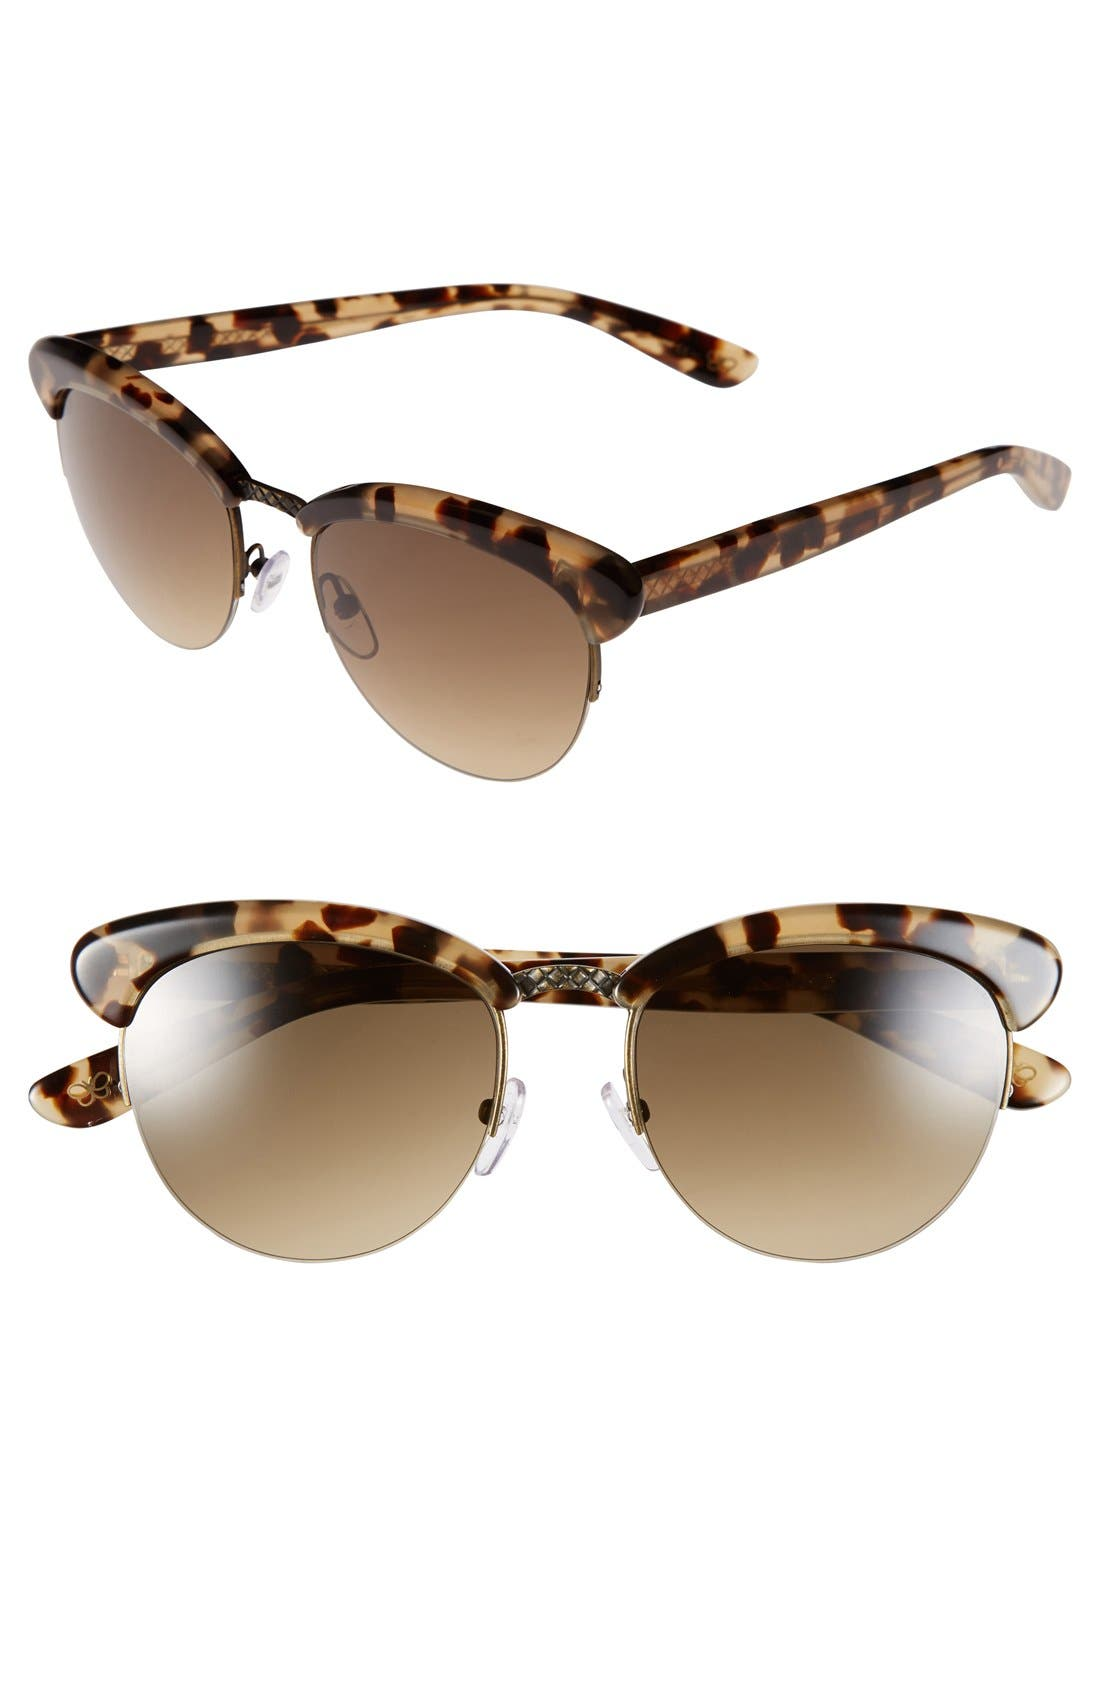 Main Image - Bottega Veneta 53mm Retro Sunglasses